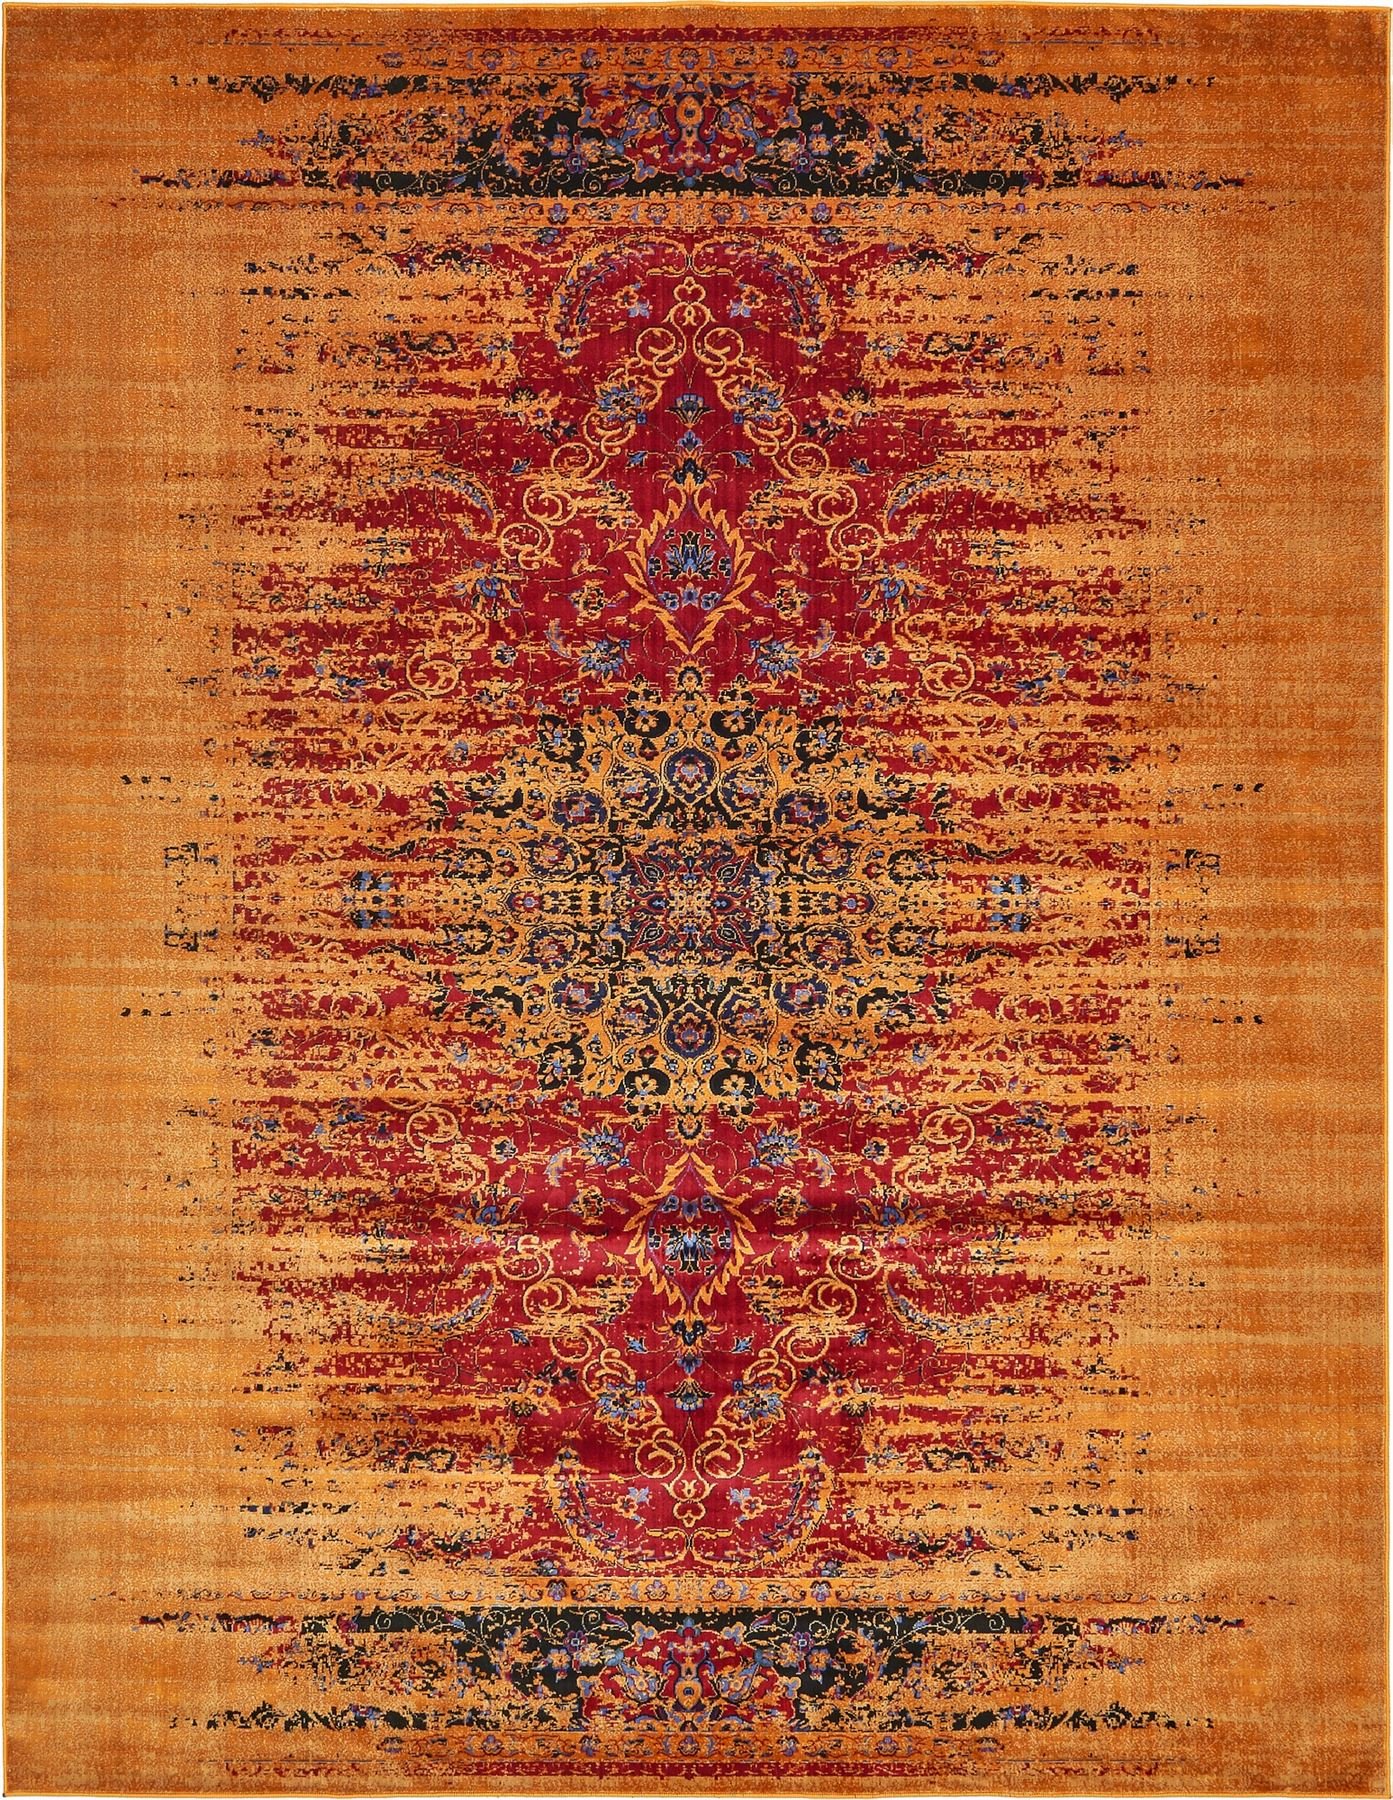 Modern Carpets Floral Style Area Carpet Floor Over dyed Rugs EBay